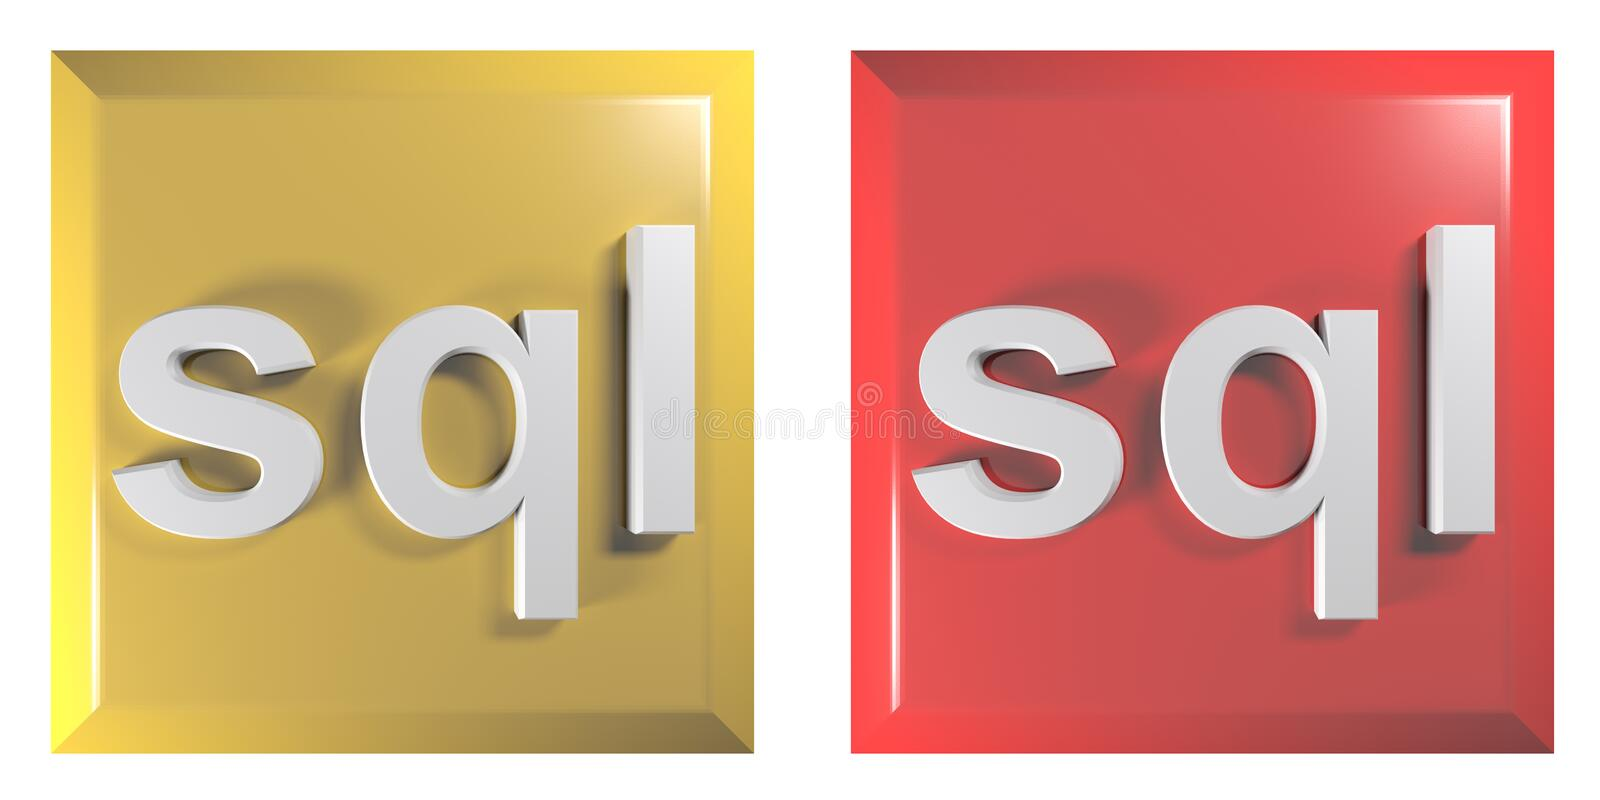 Push buttons for sql: the famous computer language to manage database - 3D rendering illustration vector illustration